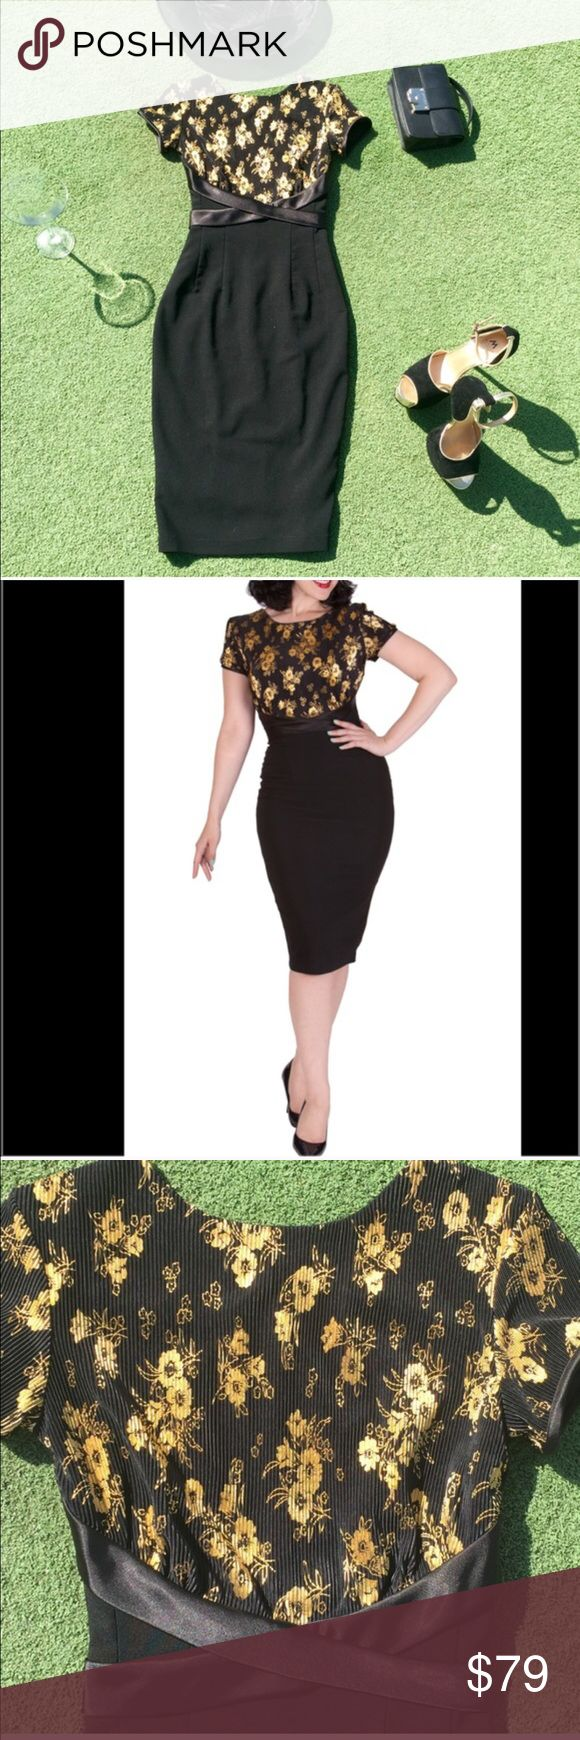 Bettie Page Splendor Black Pencil Dress This is a glamorous Bettie Page Splendor pencil dress by Tatyana. This dress has golden rises on top with a black pencil skirt. The dress has a satin attached waist band with a back bow. Bettie Page Dresses